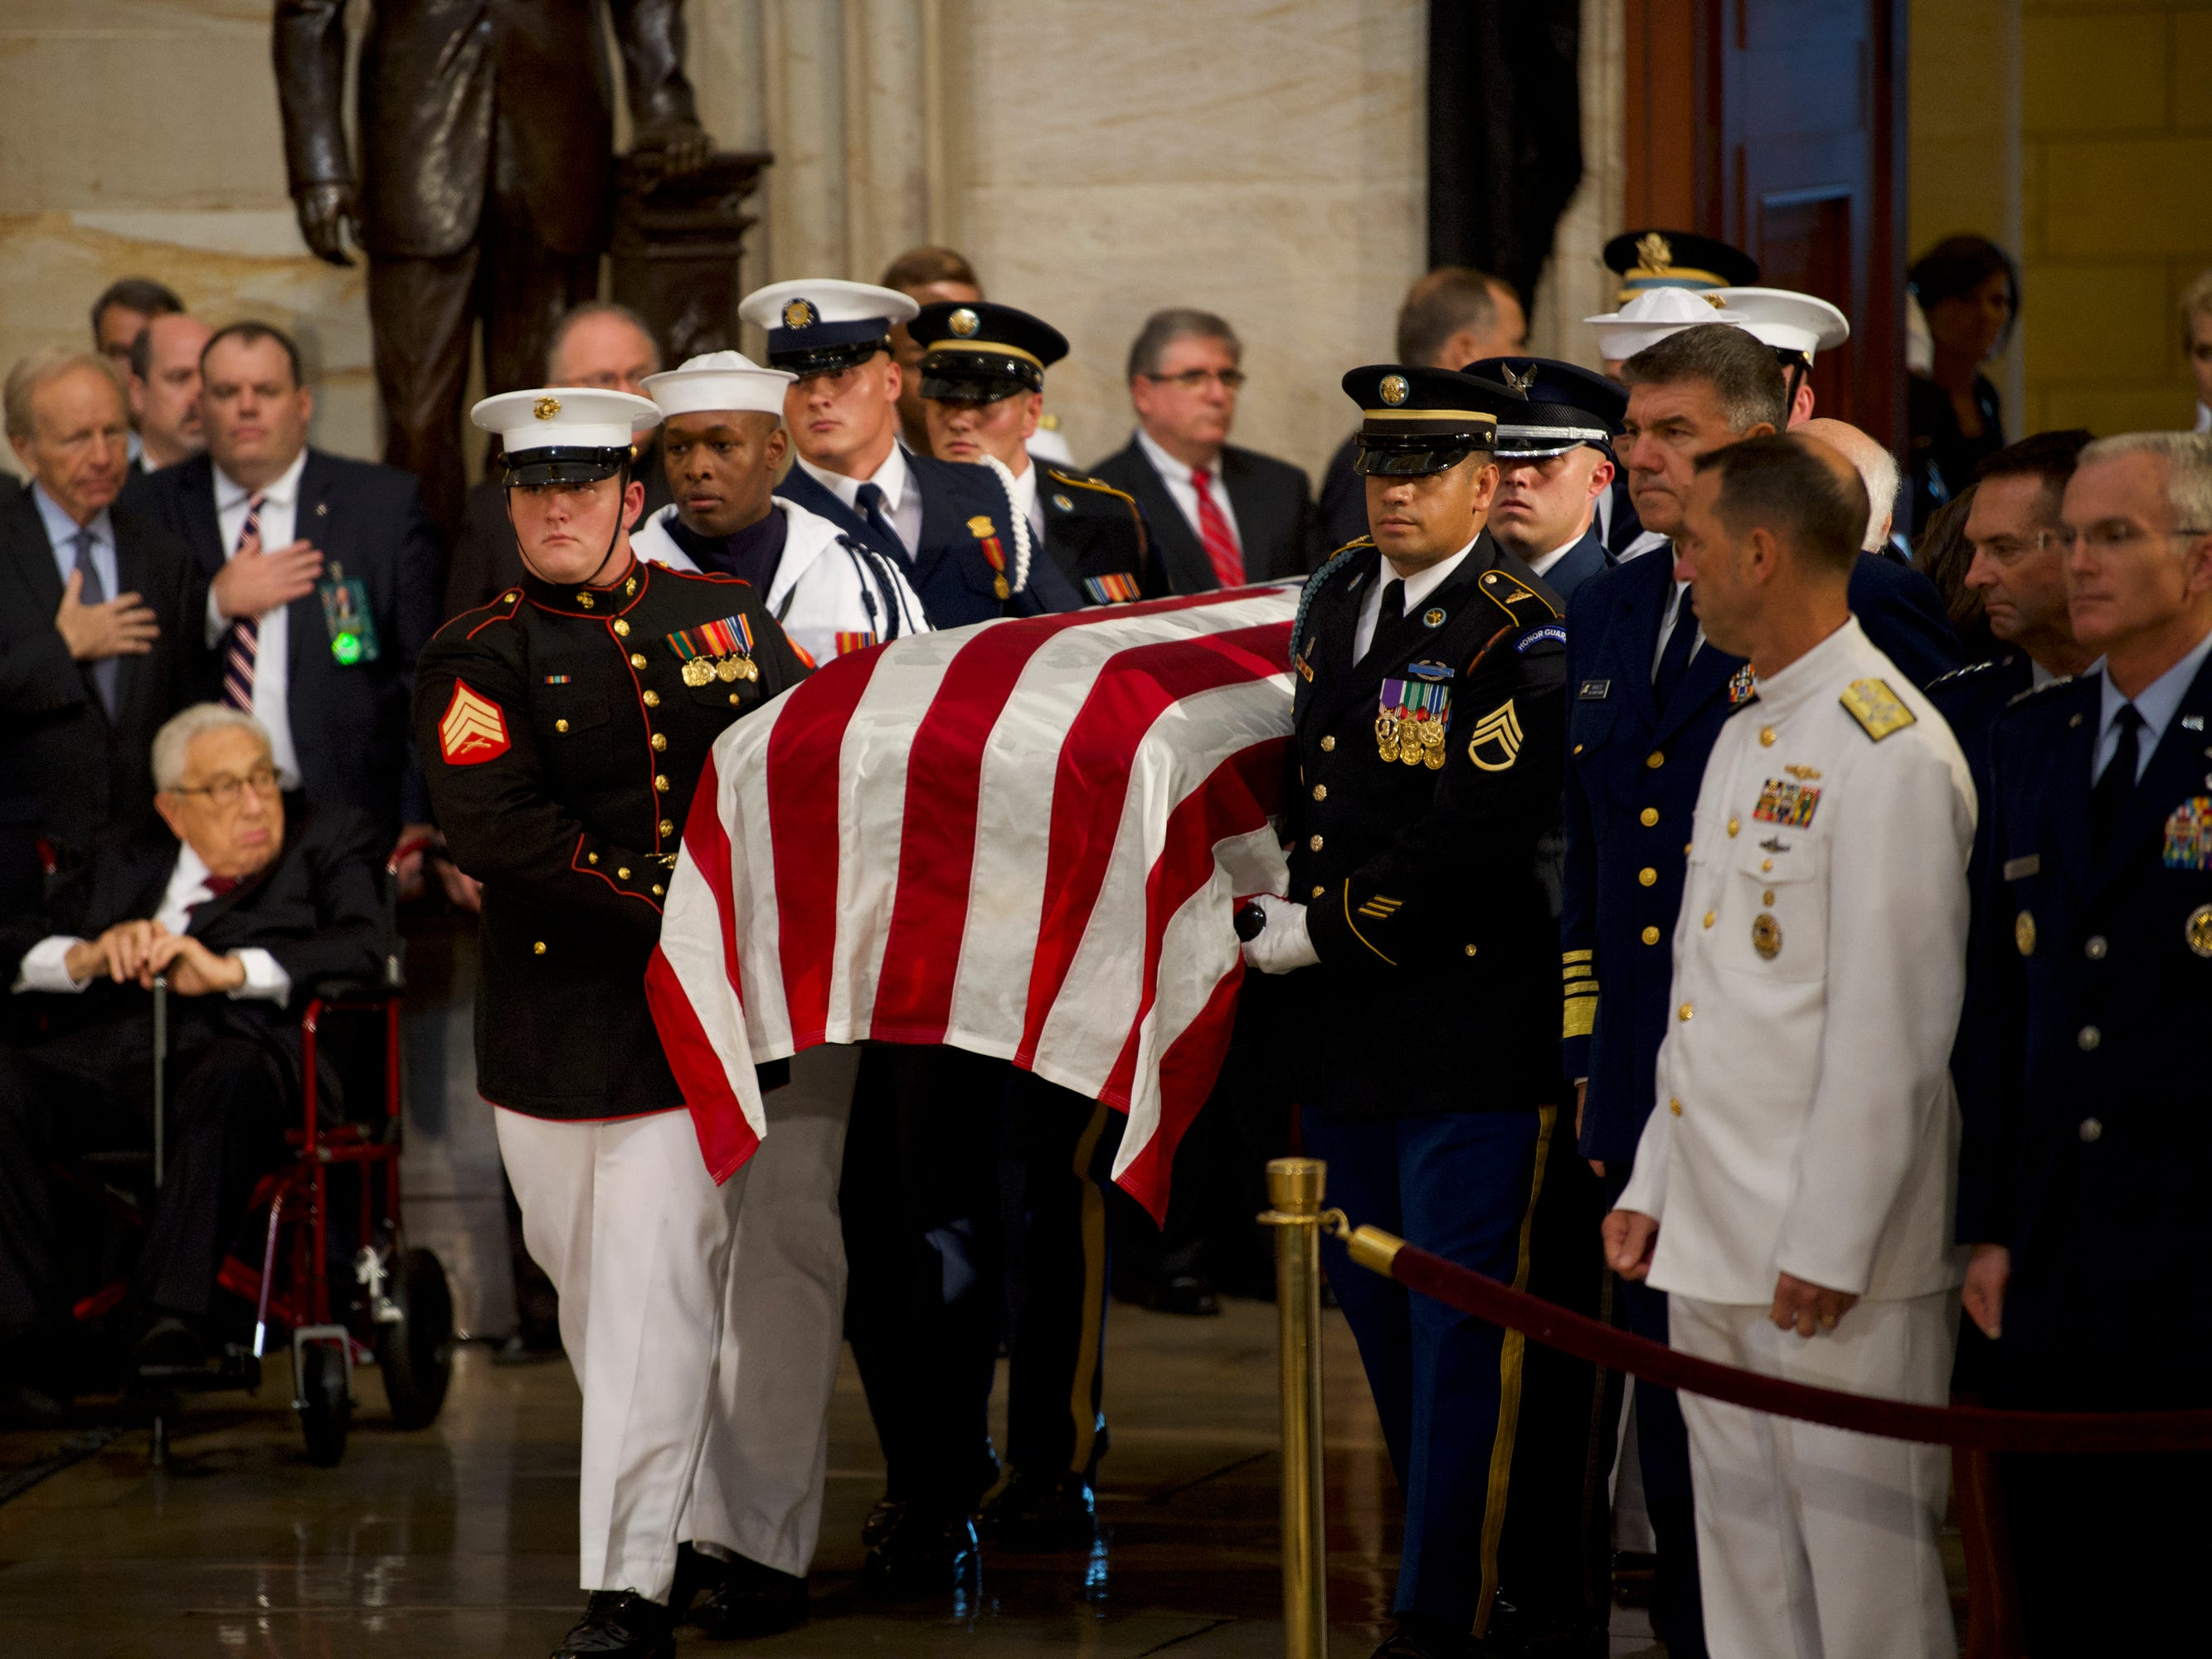 8/31/18 10:52:05 AM -- Washington, DC, U.S.A  -- The body of John McCain is carried in before he lies in state at the U.S. Capitol in Washington on Aug. 31, 2018 in Washington. Sen. McCain died on Aug. 25. --    Photo by Jasper Colt, USA TODAY Staff ORG XMIT:  JC 137436 McCain U.S. Capi 8/31/2018 (Via OlyDrop)